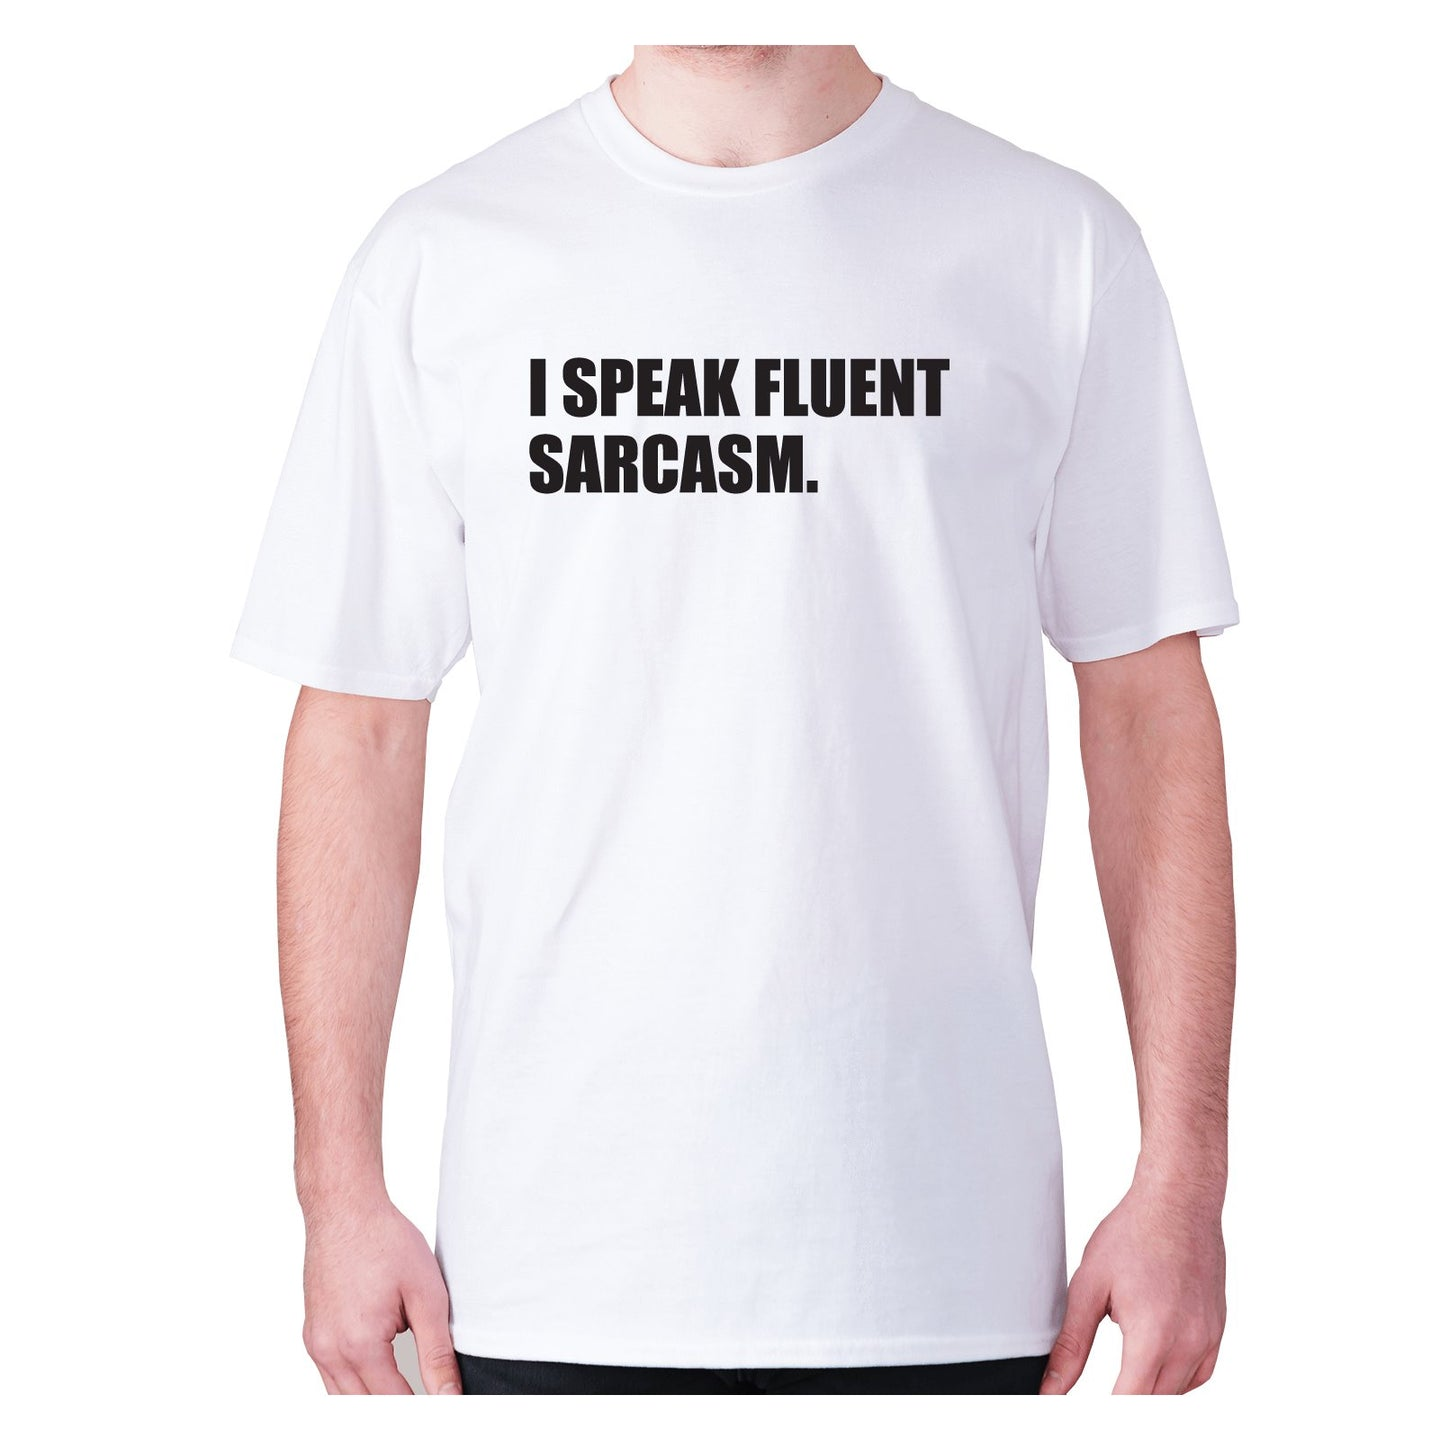 I speak fluent sarcasm - men's premium t-shirt - White / S - Graphic Gear